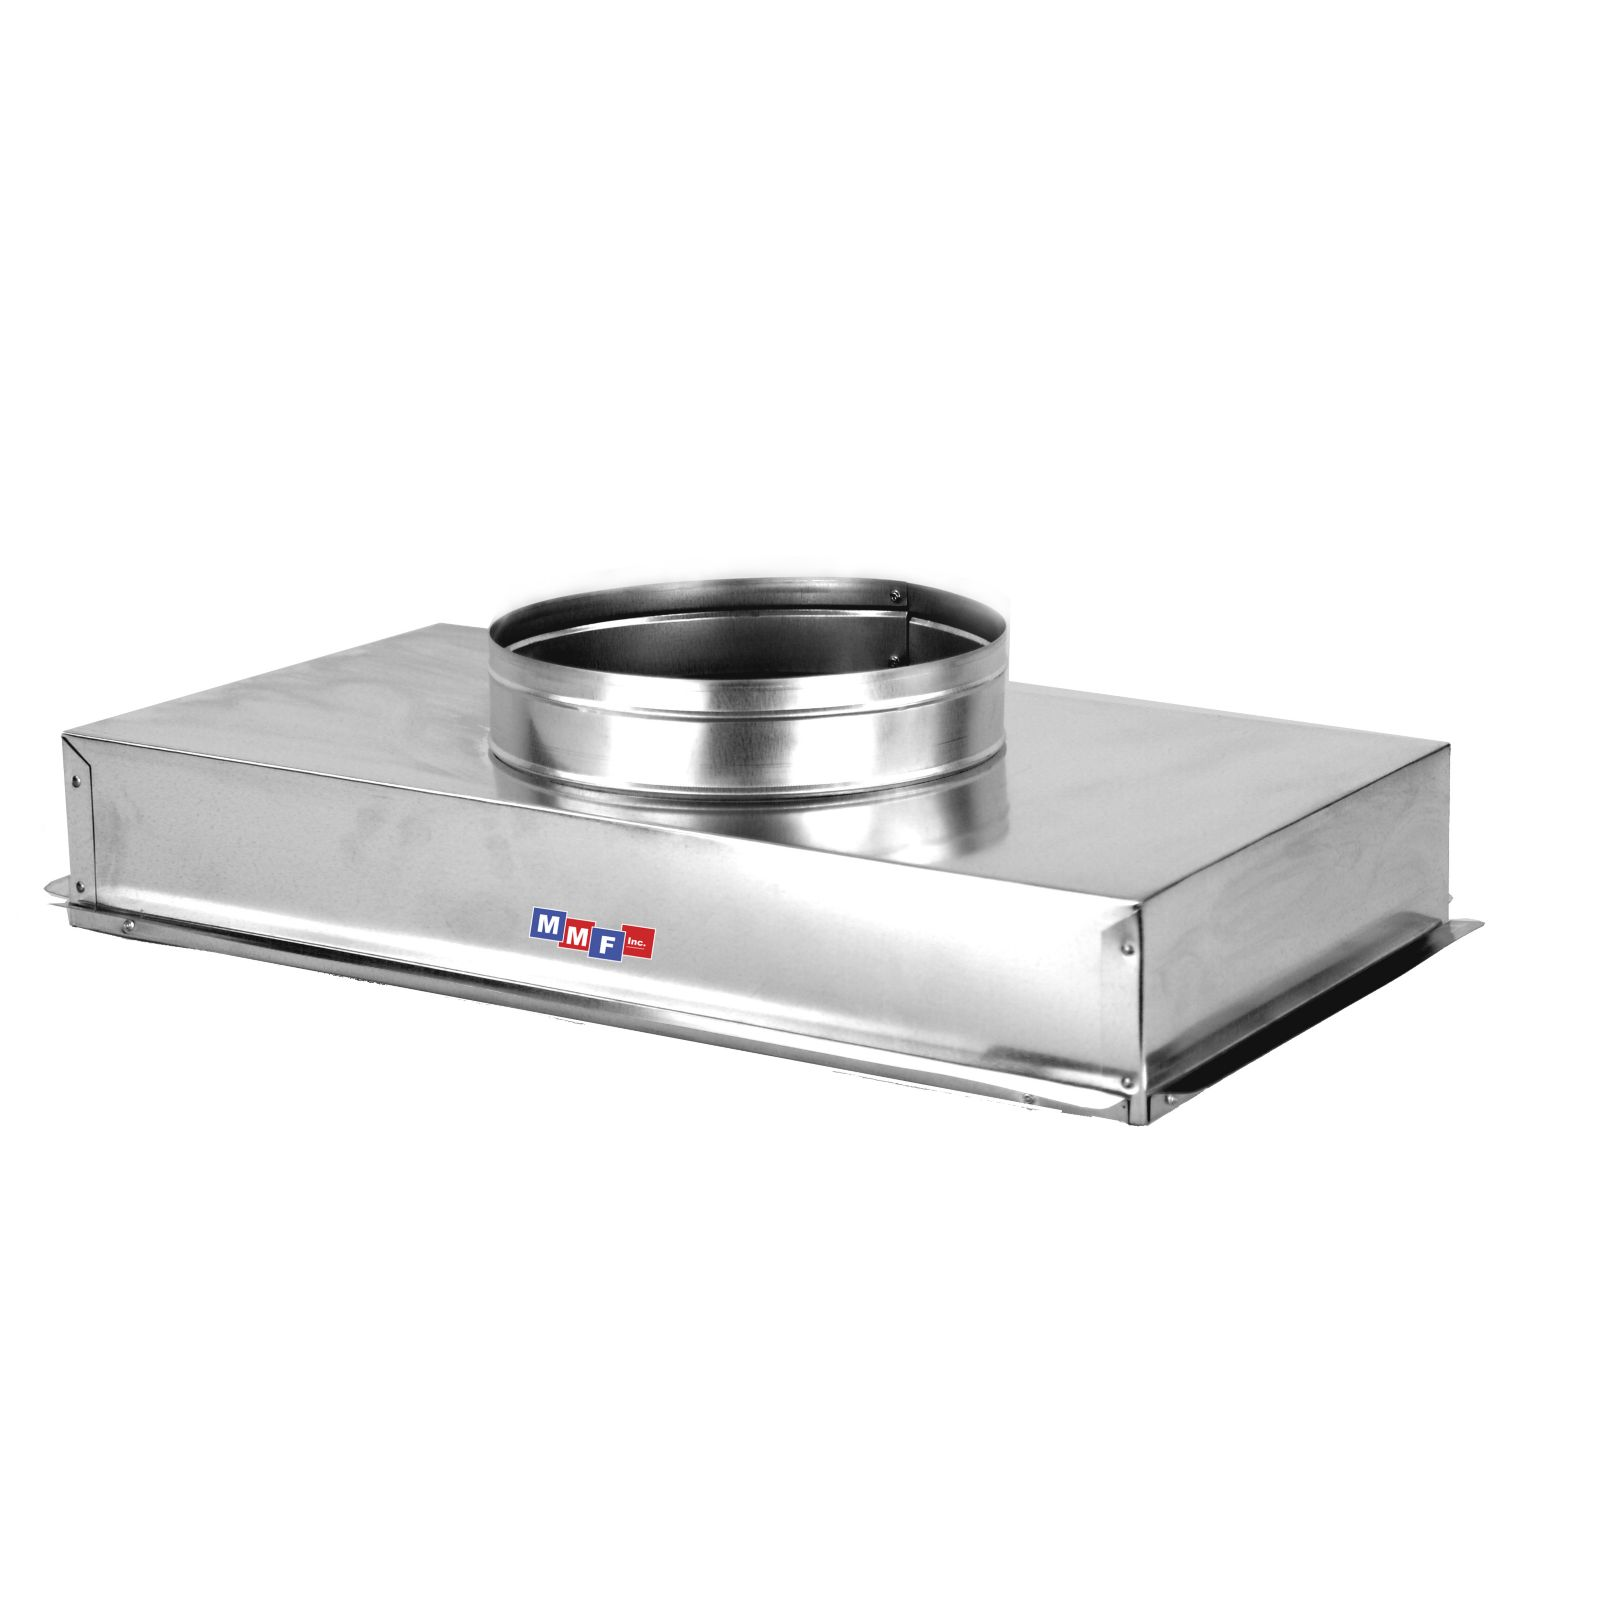 "Modular Metal ACRH1212AS - Return Air Can - 28 Gauge - Raw - Seal All Seams 12 1/4"" X 12 1/4"" - Uninsulated - 4"" High Box"